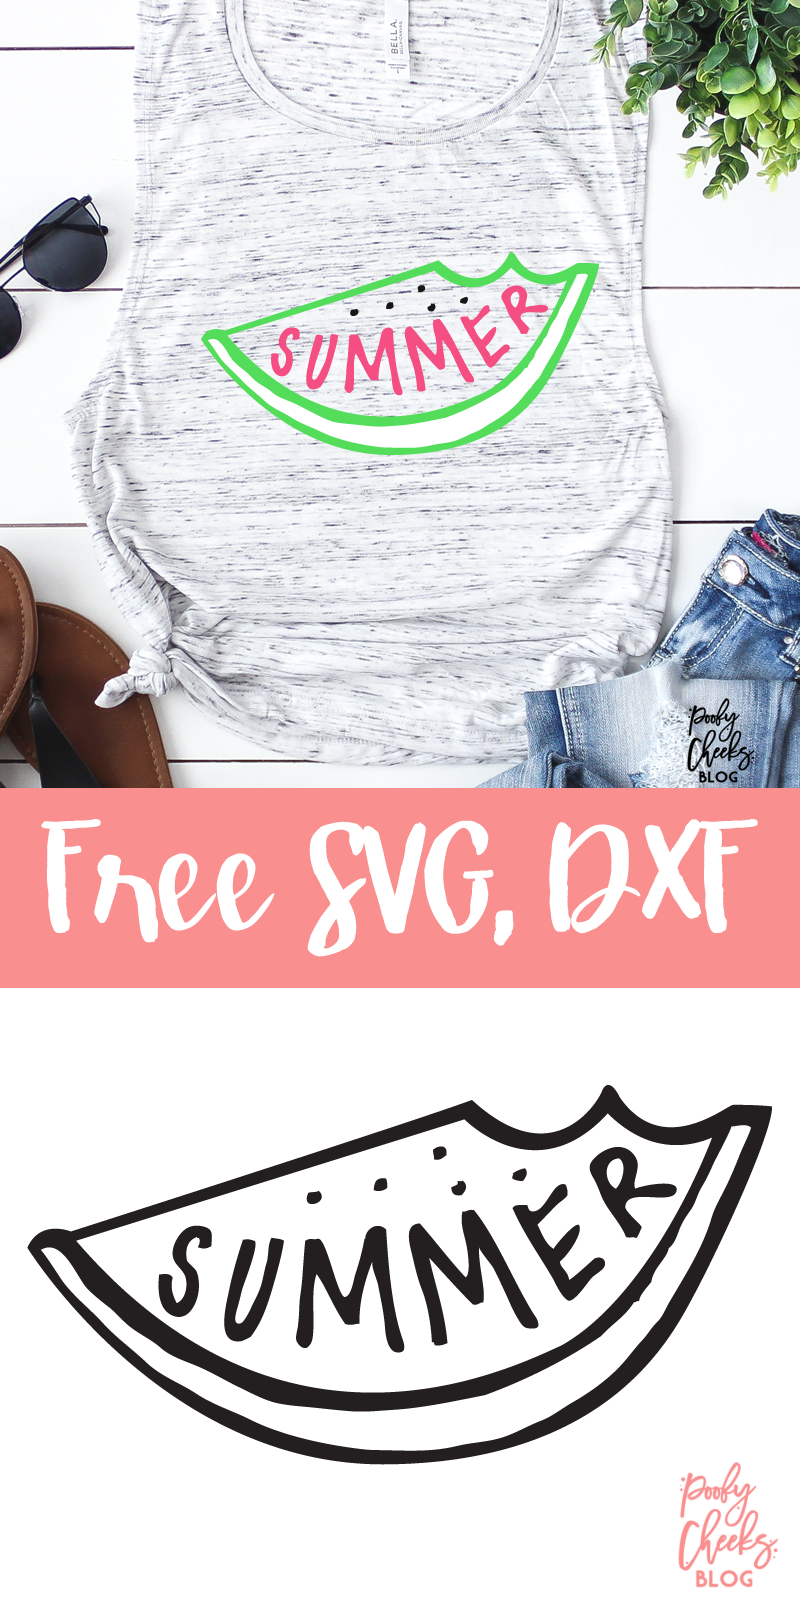 Summer Watermelon Cut File - Silhouette and Cricut Designs and Project Ideas - Poofy Cheeks